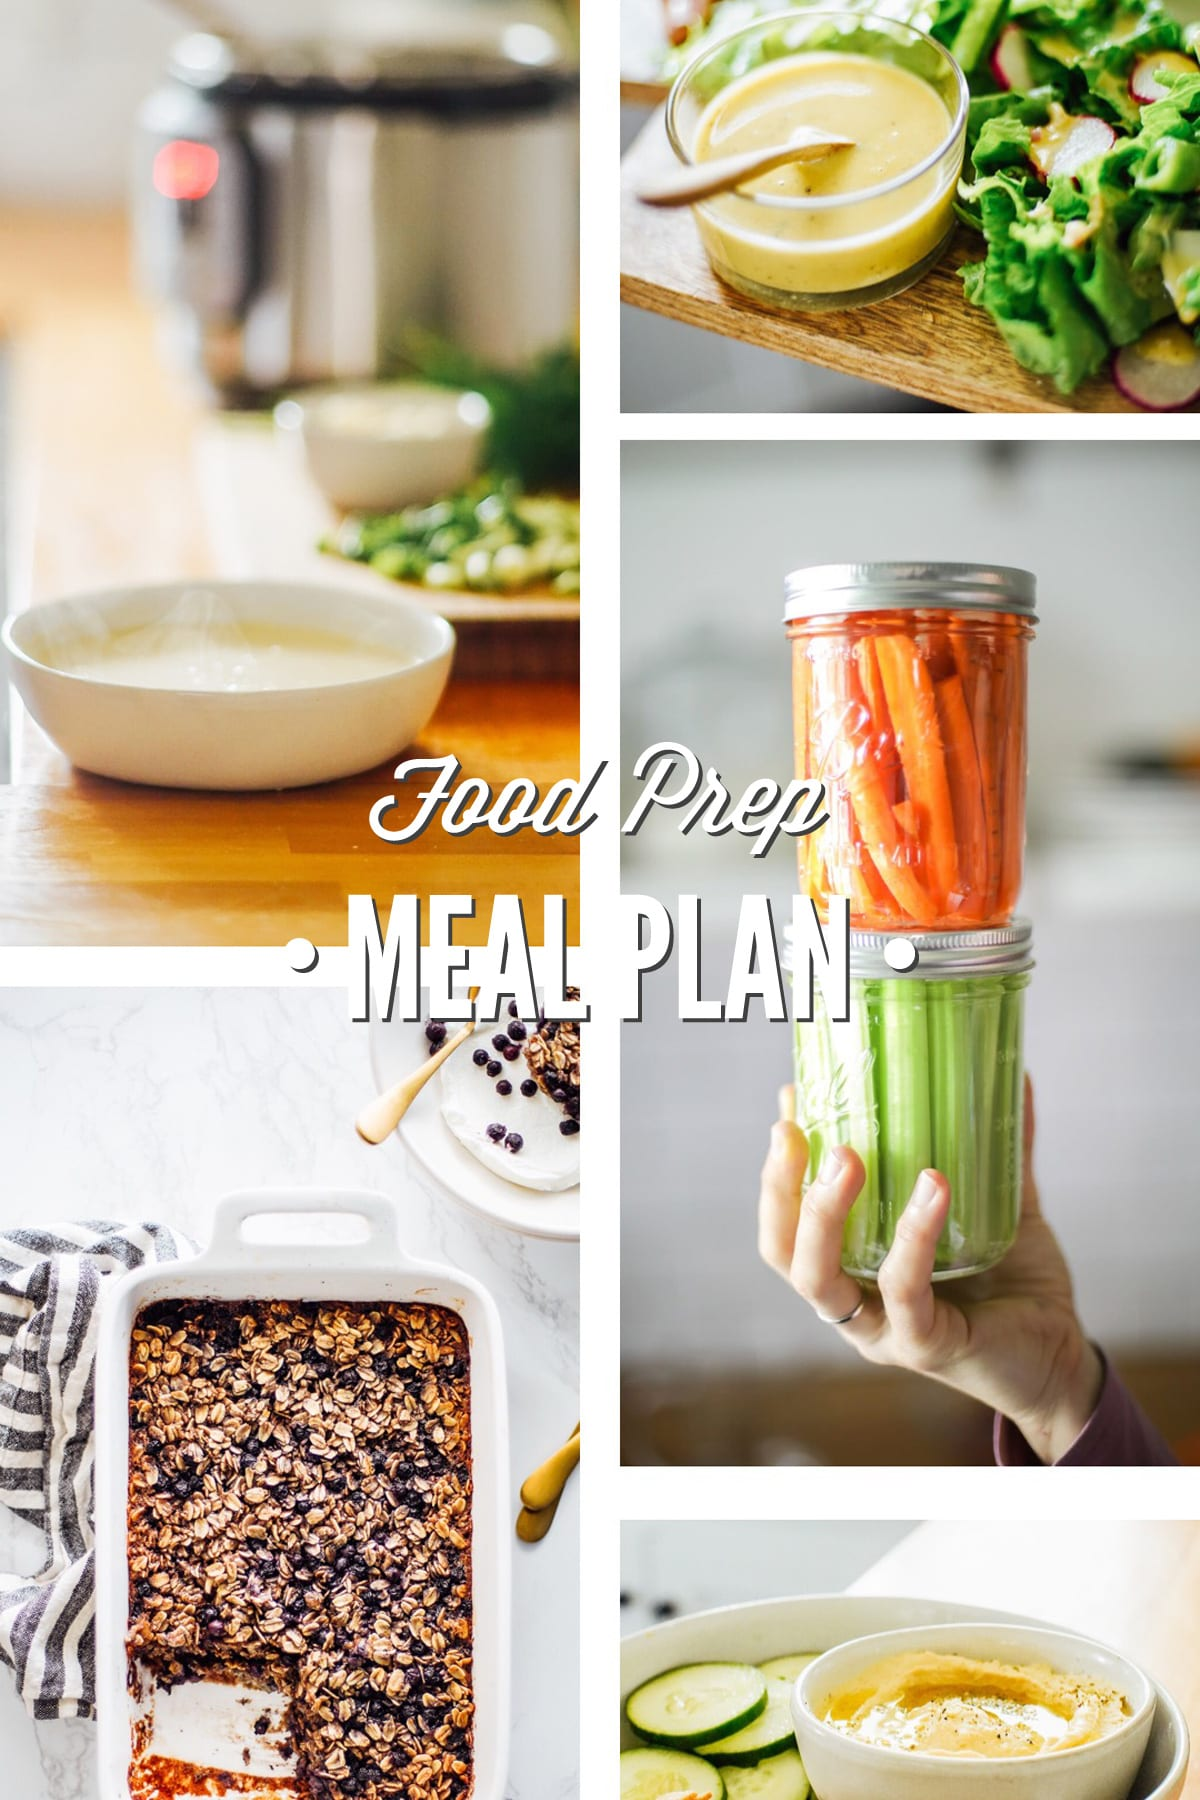 Food Prep Plan: 6 Foods You Can Make Now and Enjoy All Week